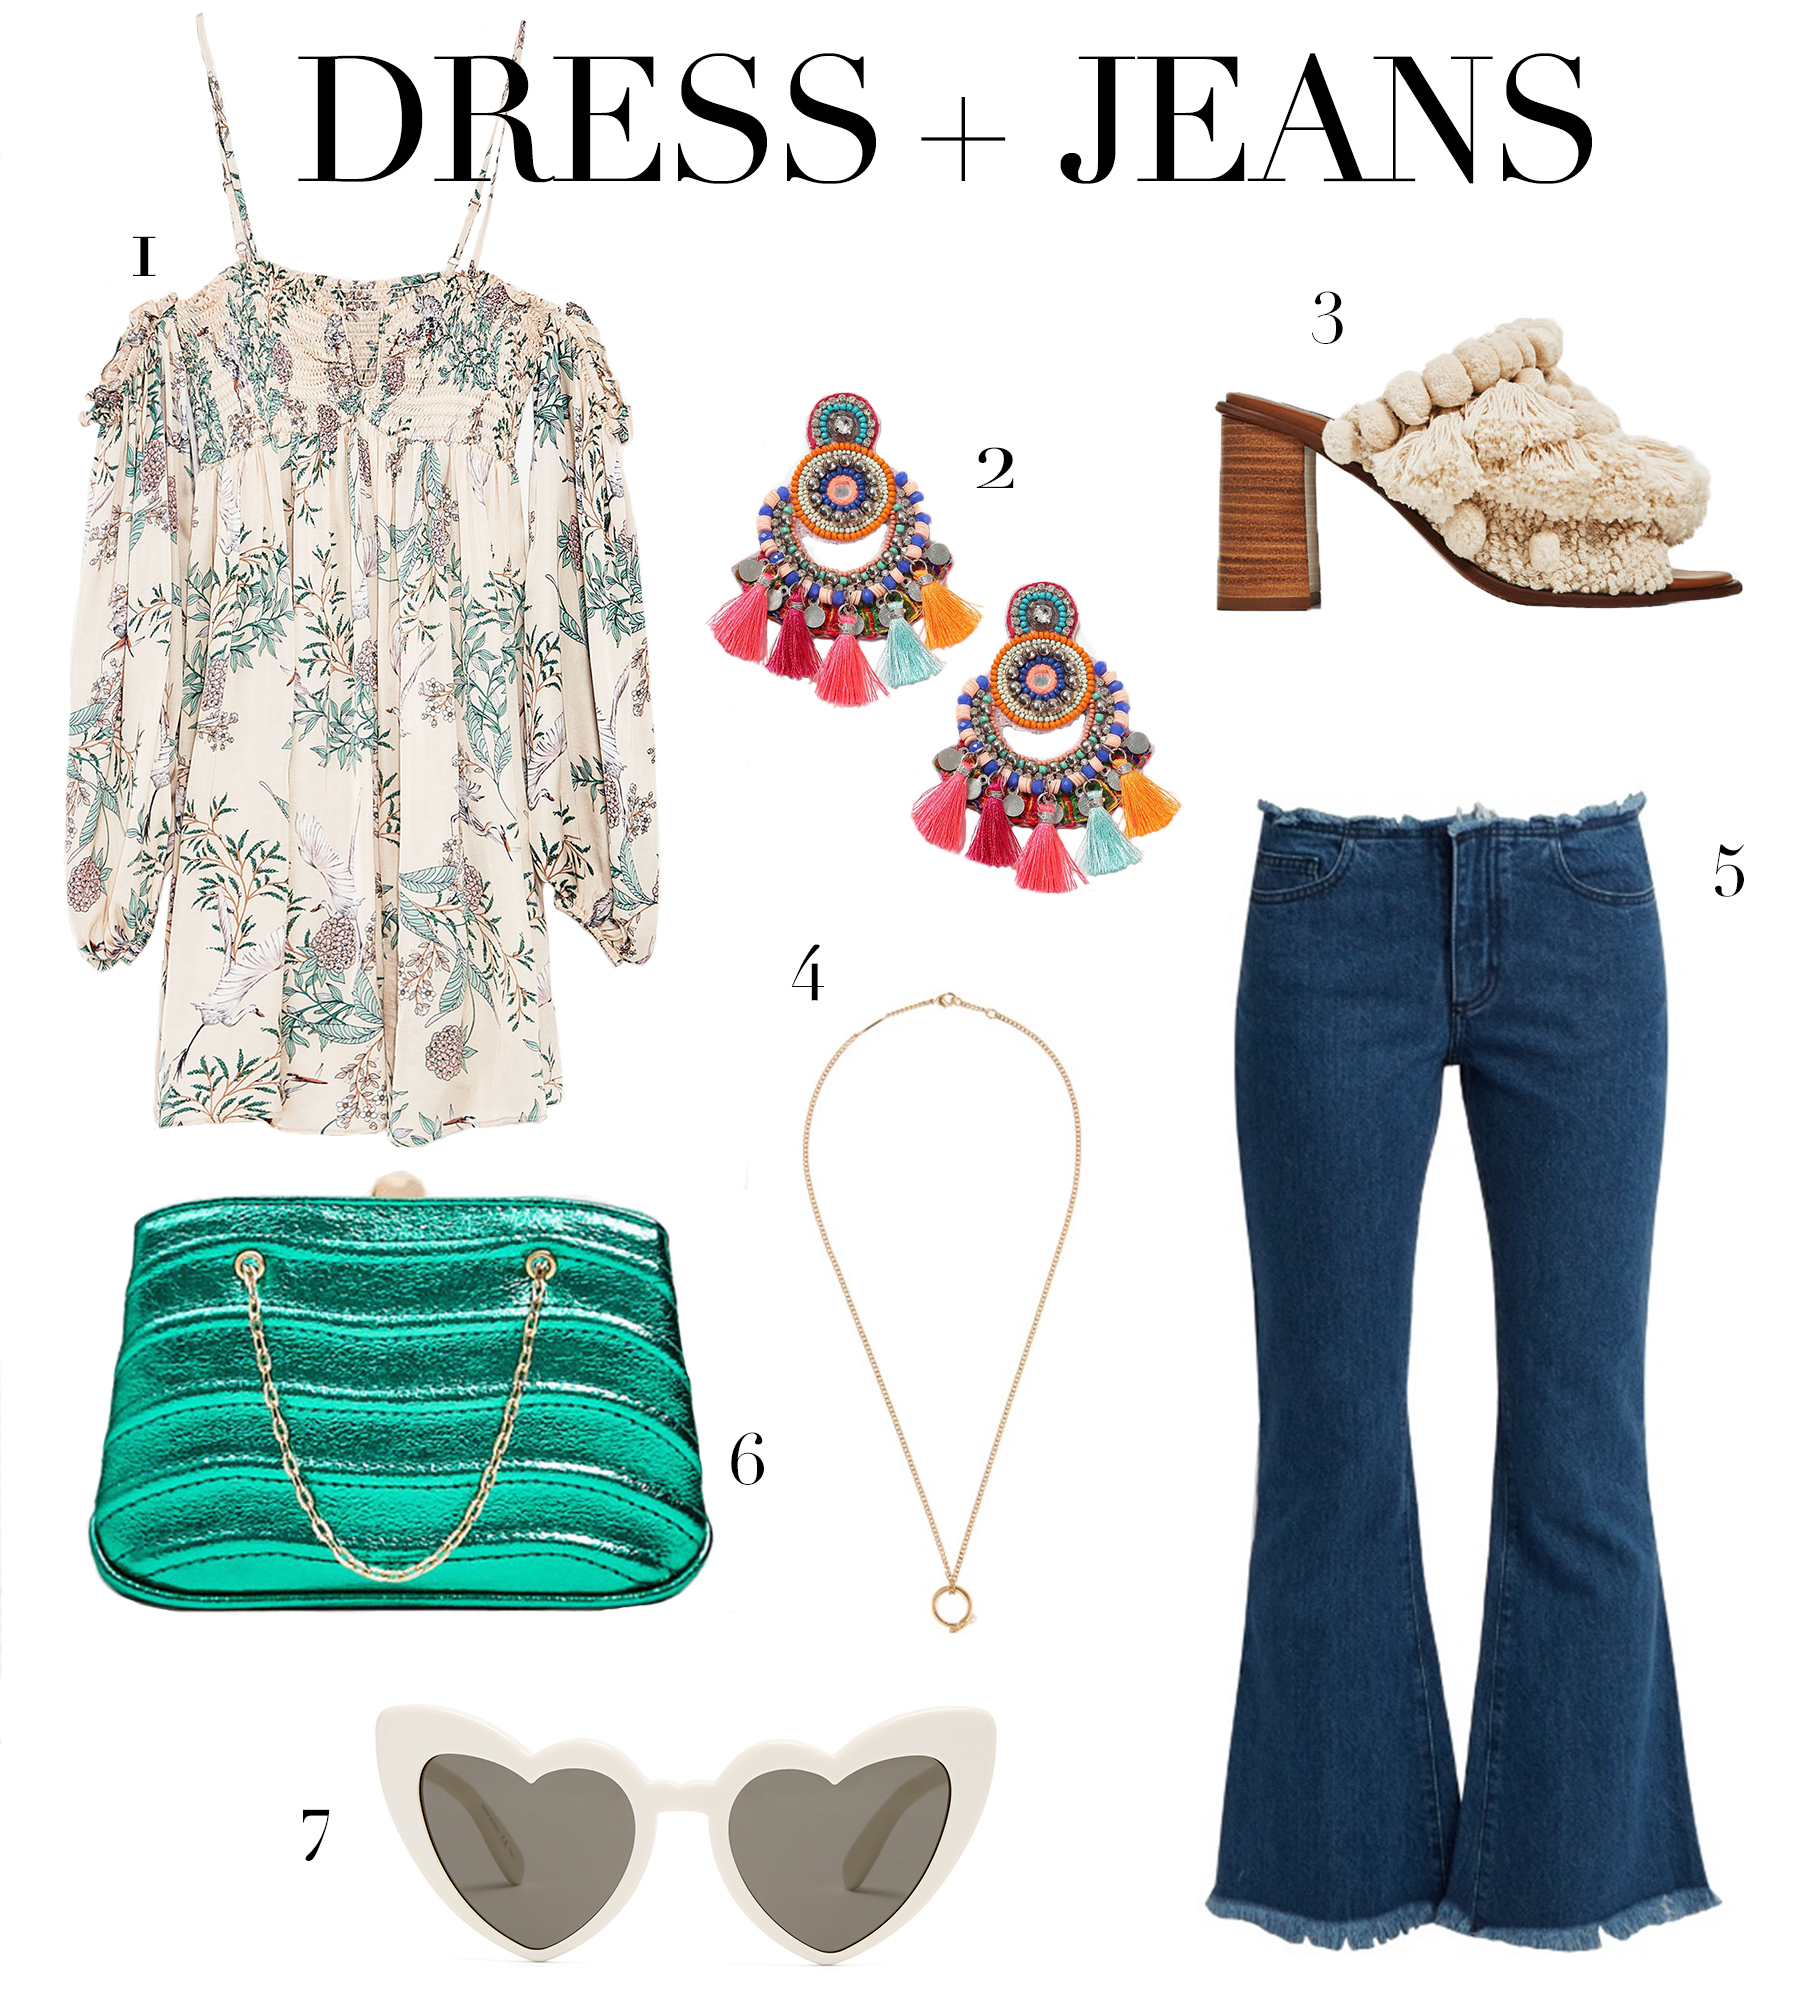 dress-jeans-combi-the-mom